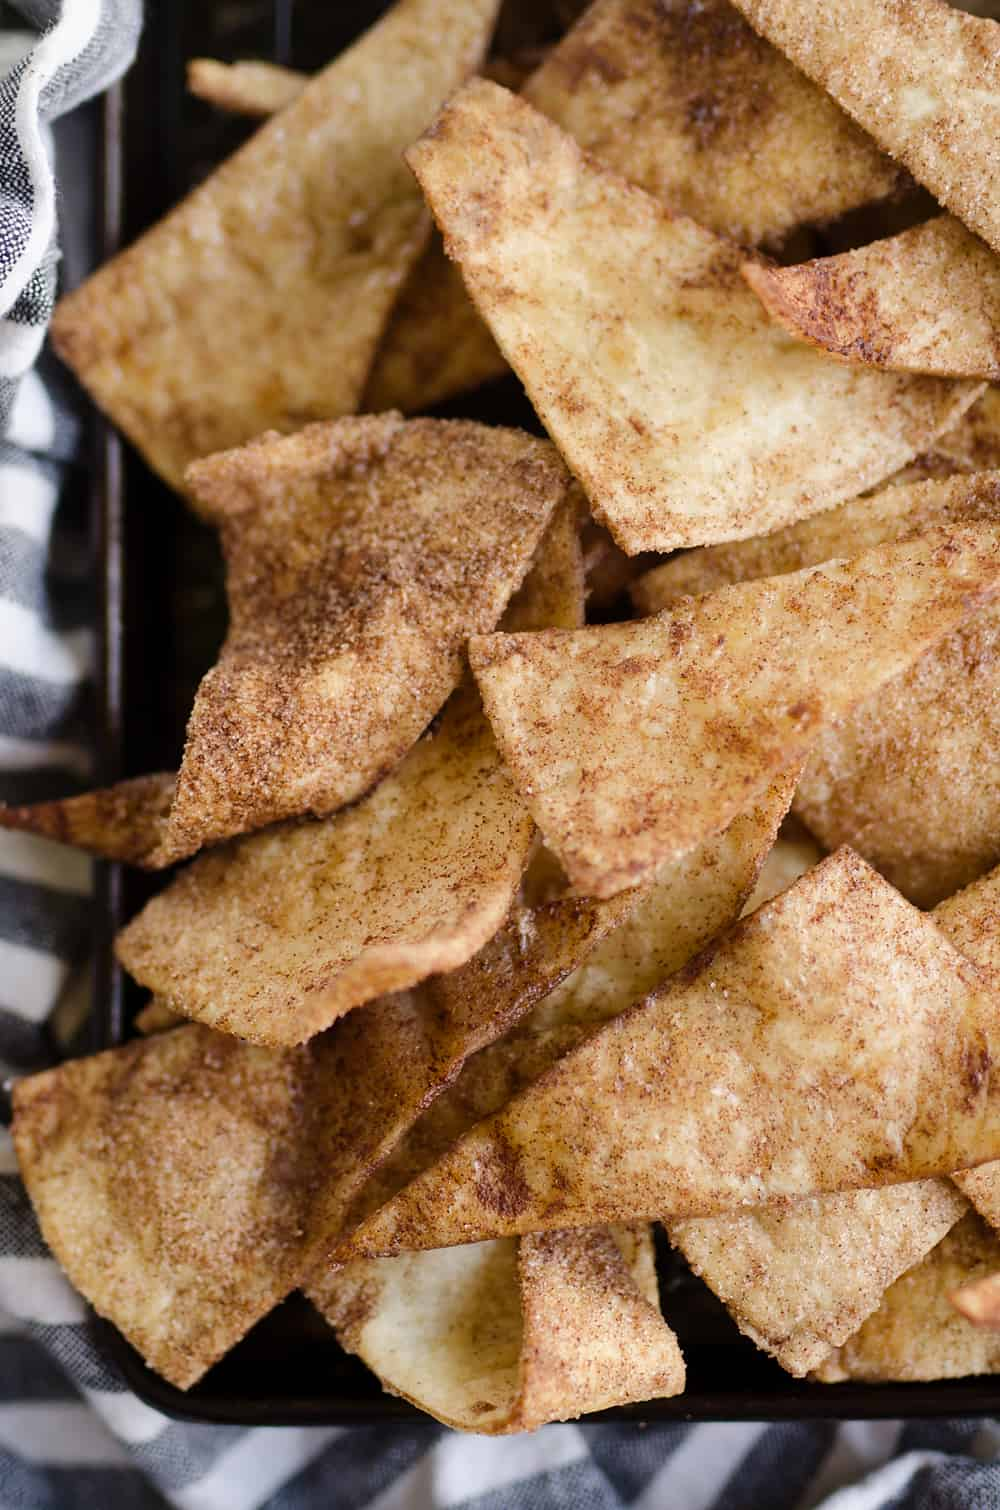 Baked Cinnamon Sugar Tortilla Chips in sheet pan